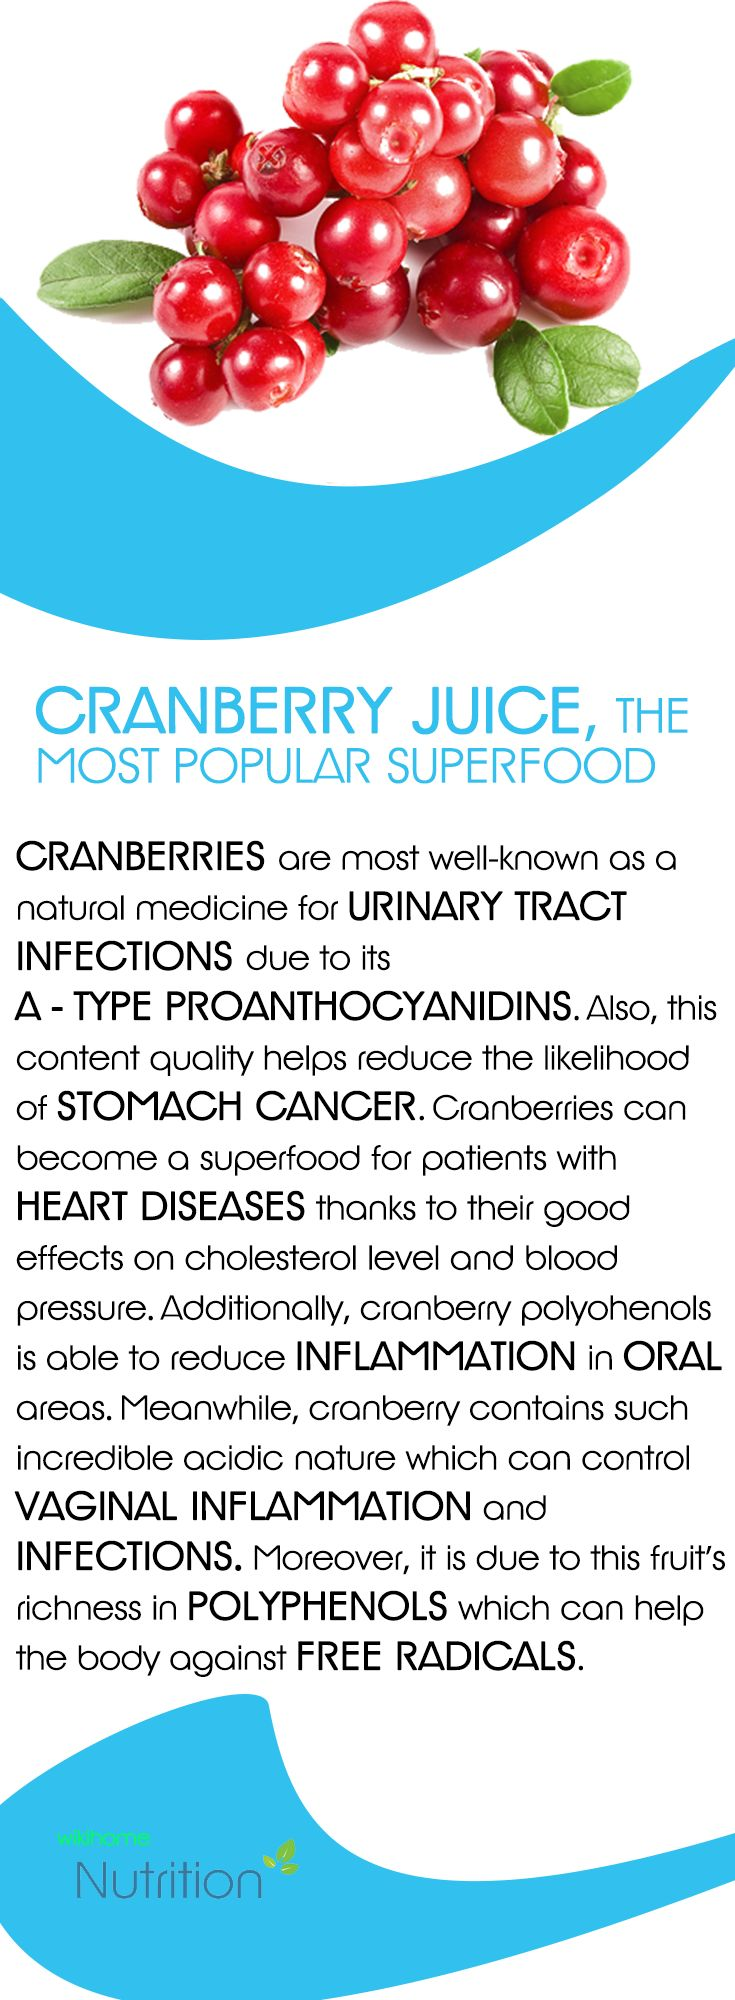 Cranberry juice, the most popular superfood